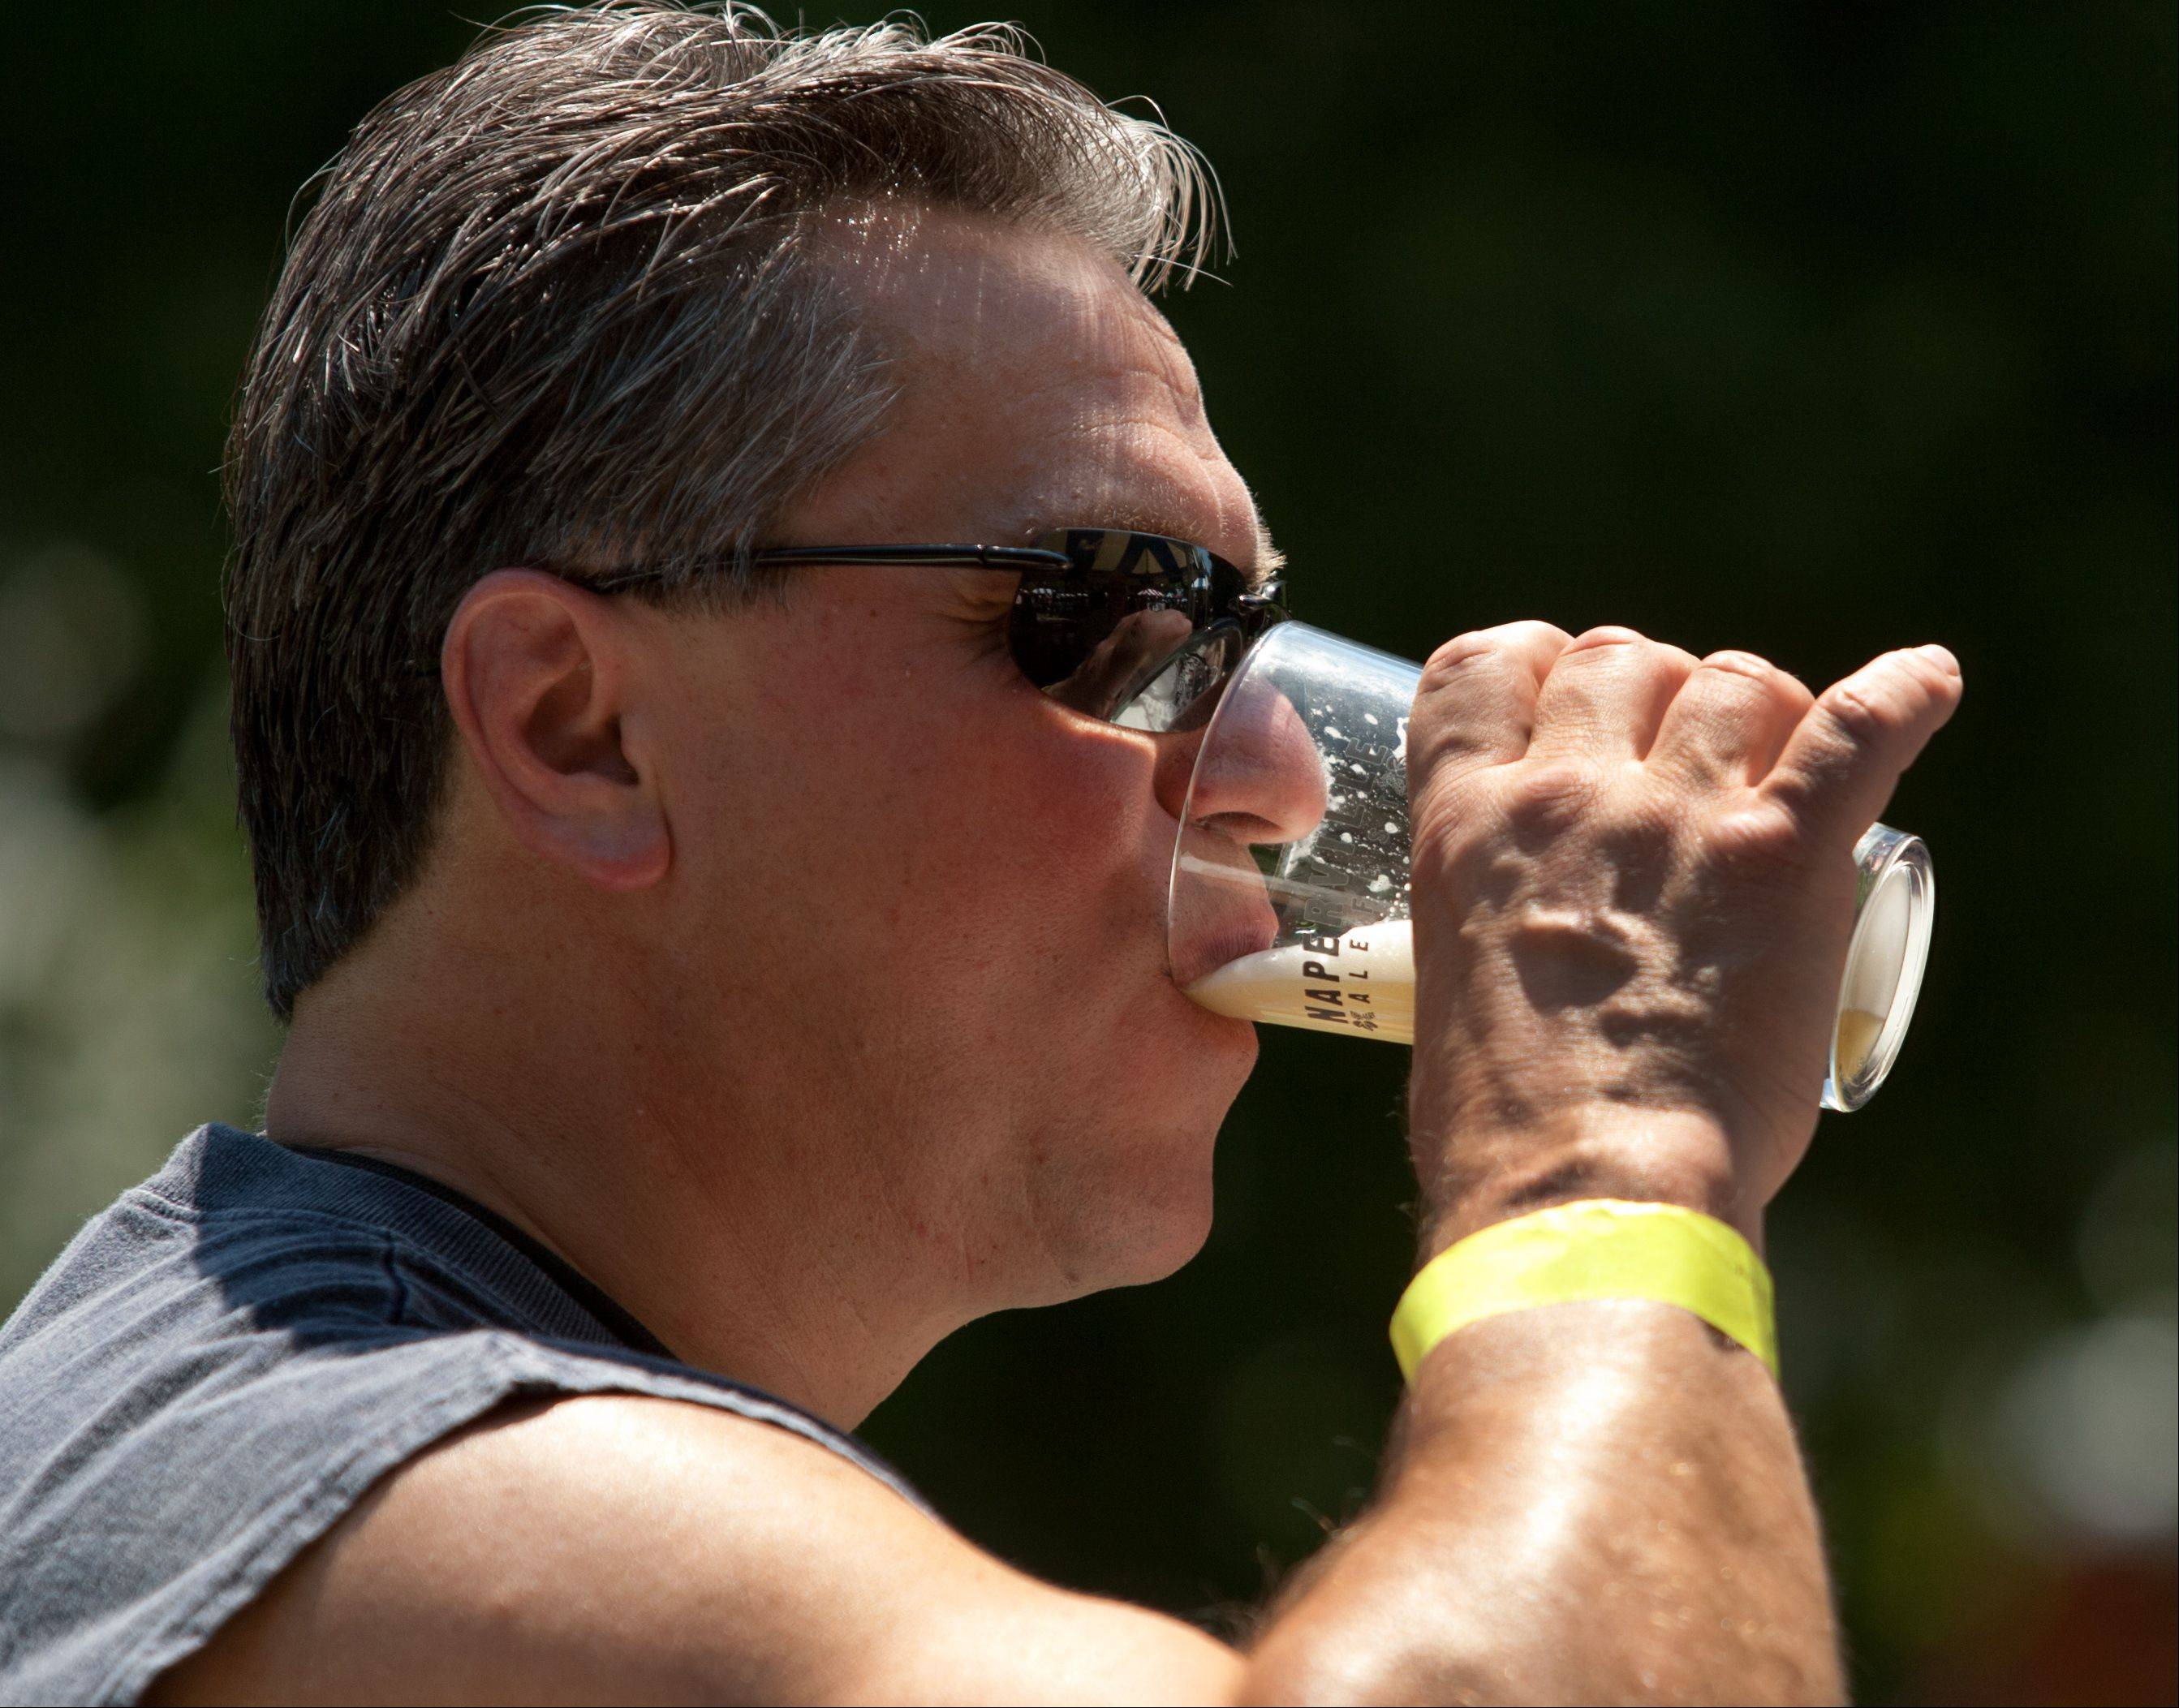 "Joe Macak, of Naperville, sips an Alltech Lexington Brewing sample, during the Naperville Ale Fest at Naper Settlement. ""I'm into home brewing and have built an electronic brewery in my house. It's great to come to these events and see how you do against the pros,"" Macak said."